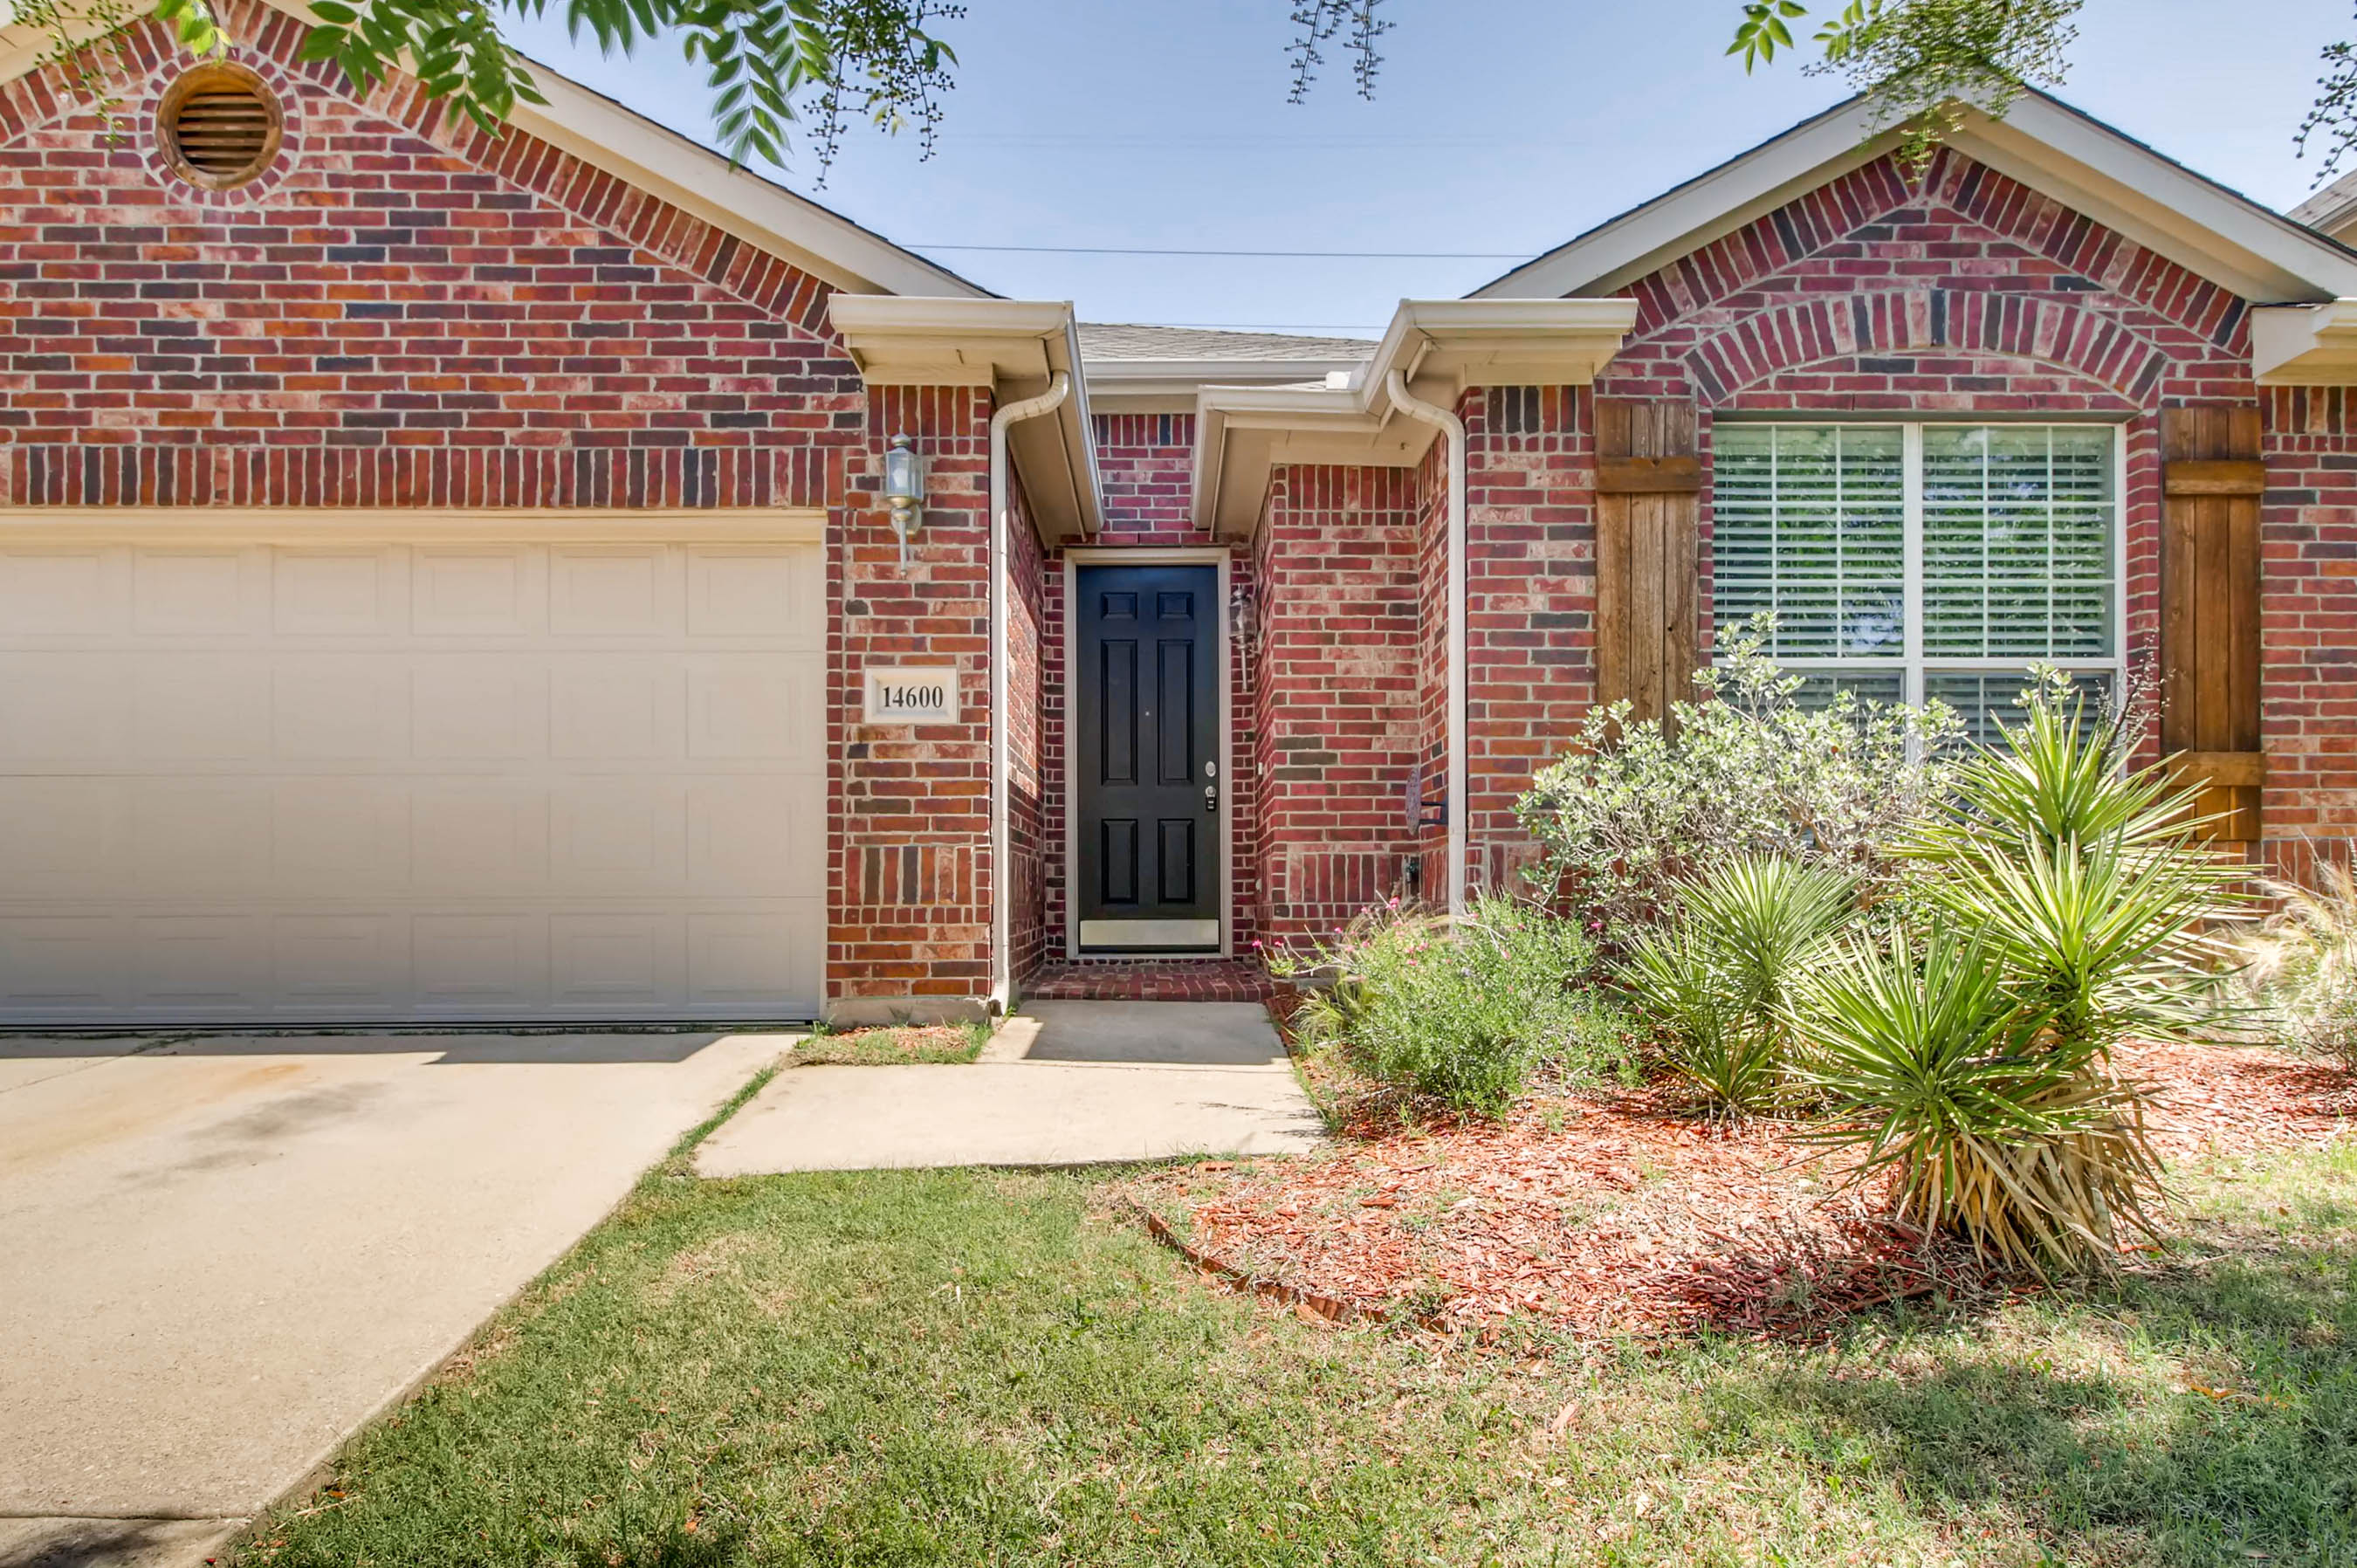 Photo of 14600 Eaglemont Dr, Little Elm, TX 75068